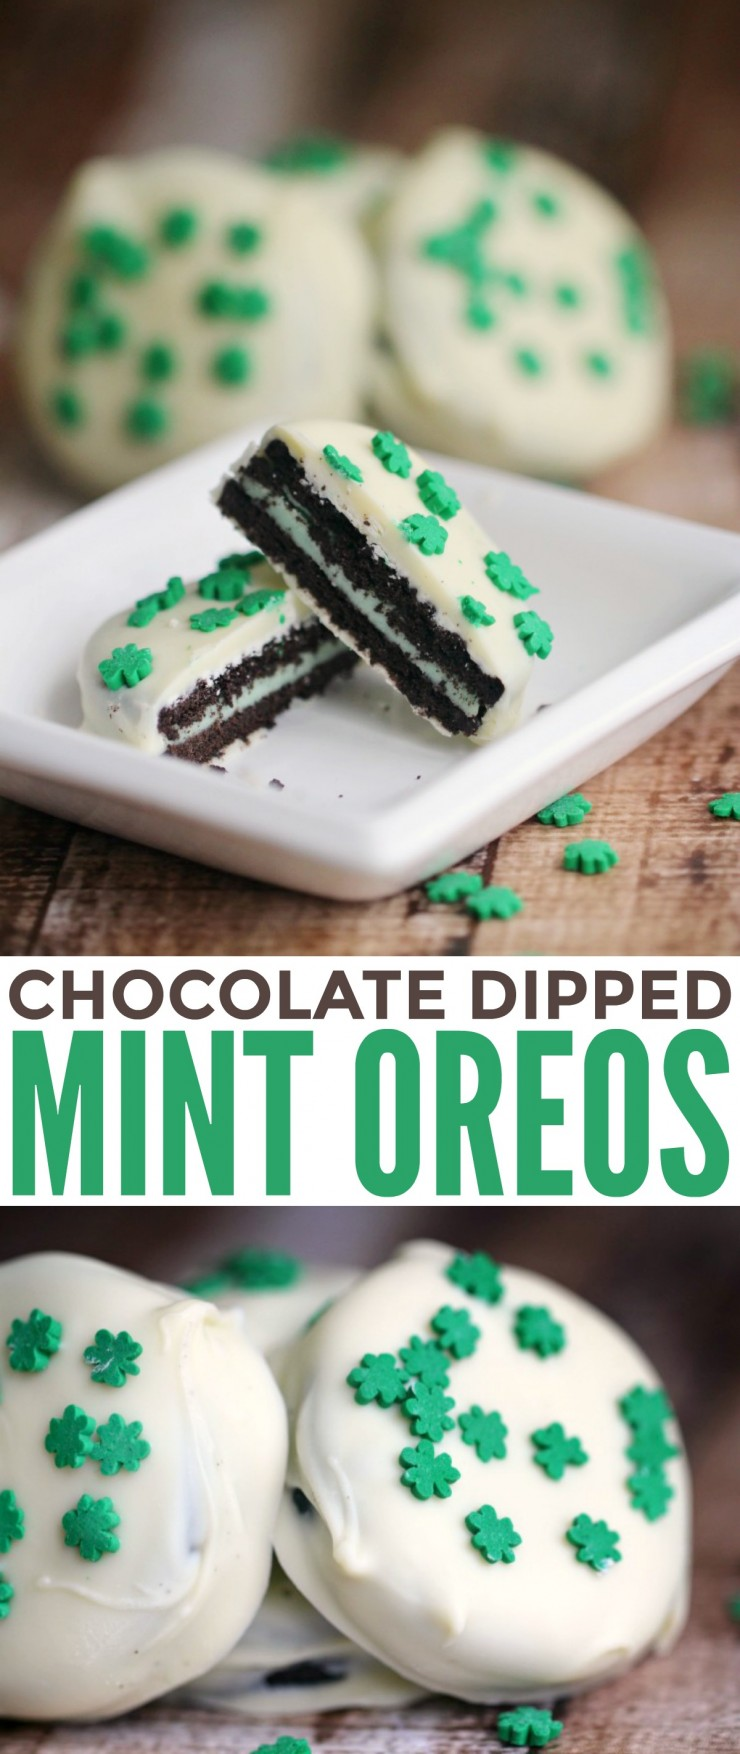 Chocolate Dipped Mint Oreos are an easy no-bake St. Patrick's Day dessert!